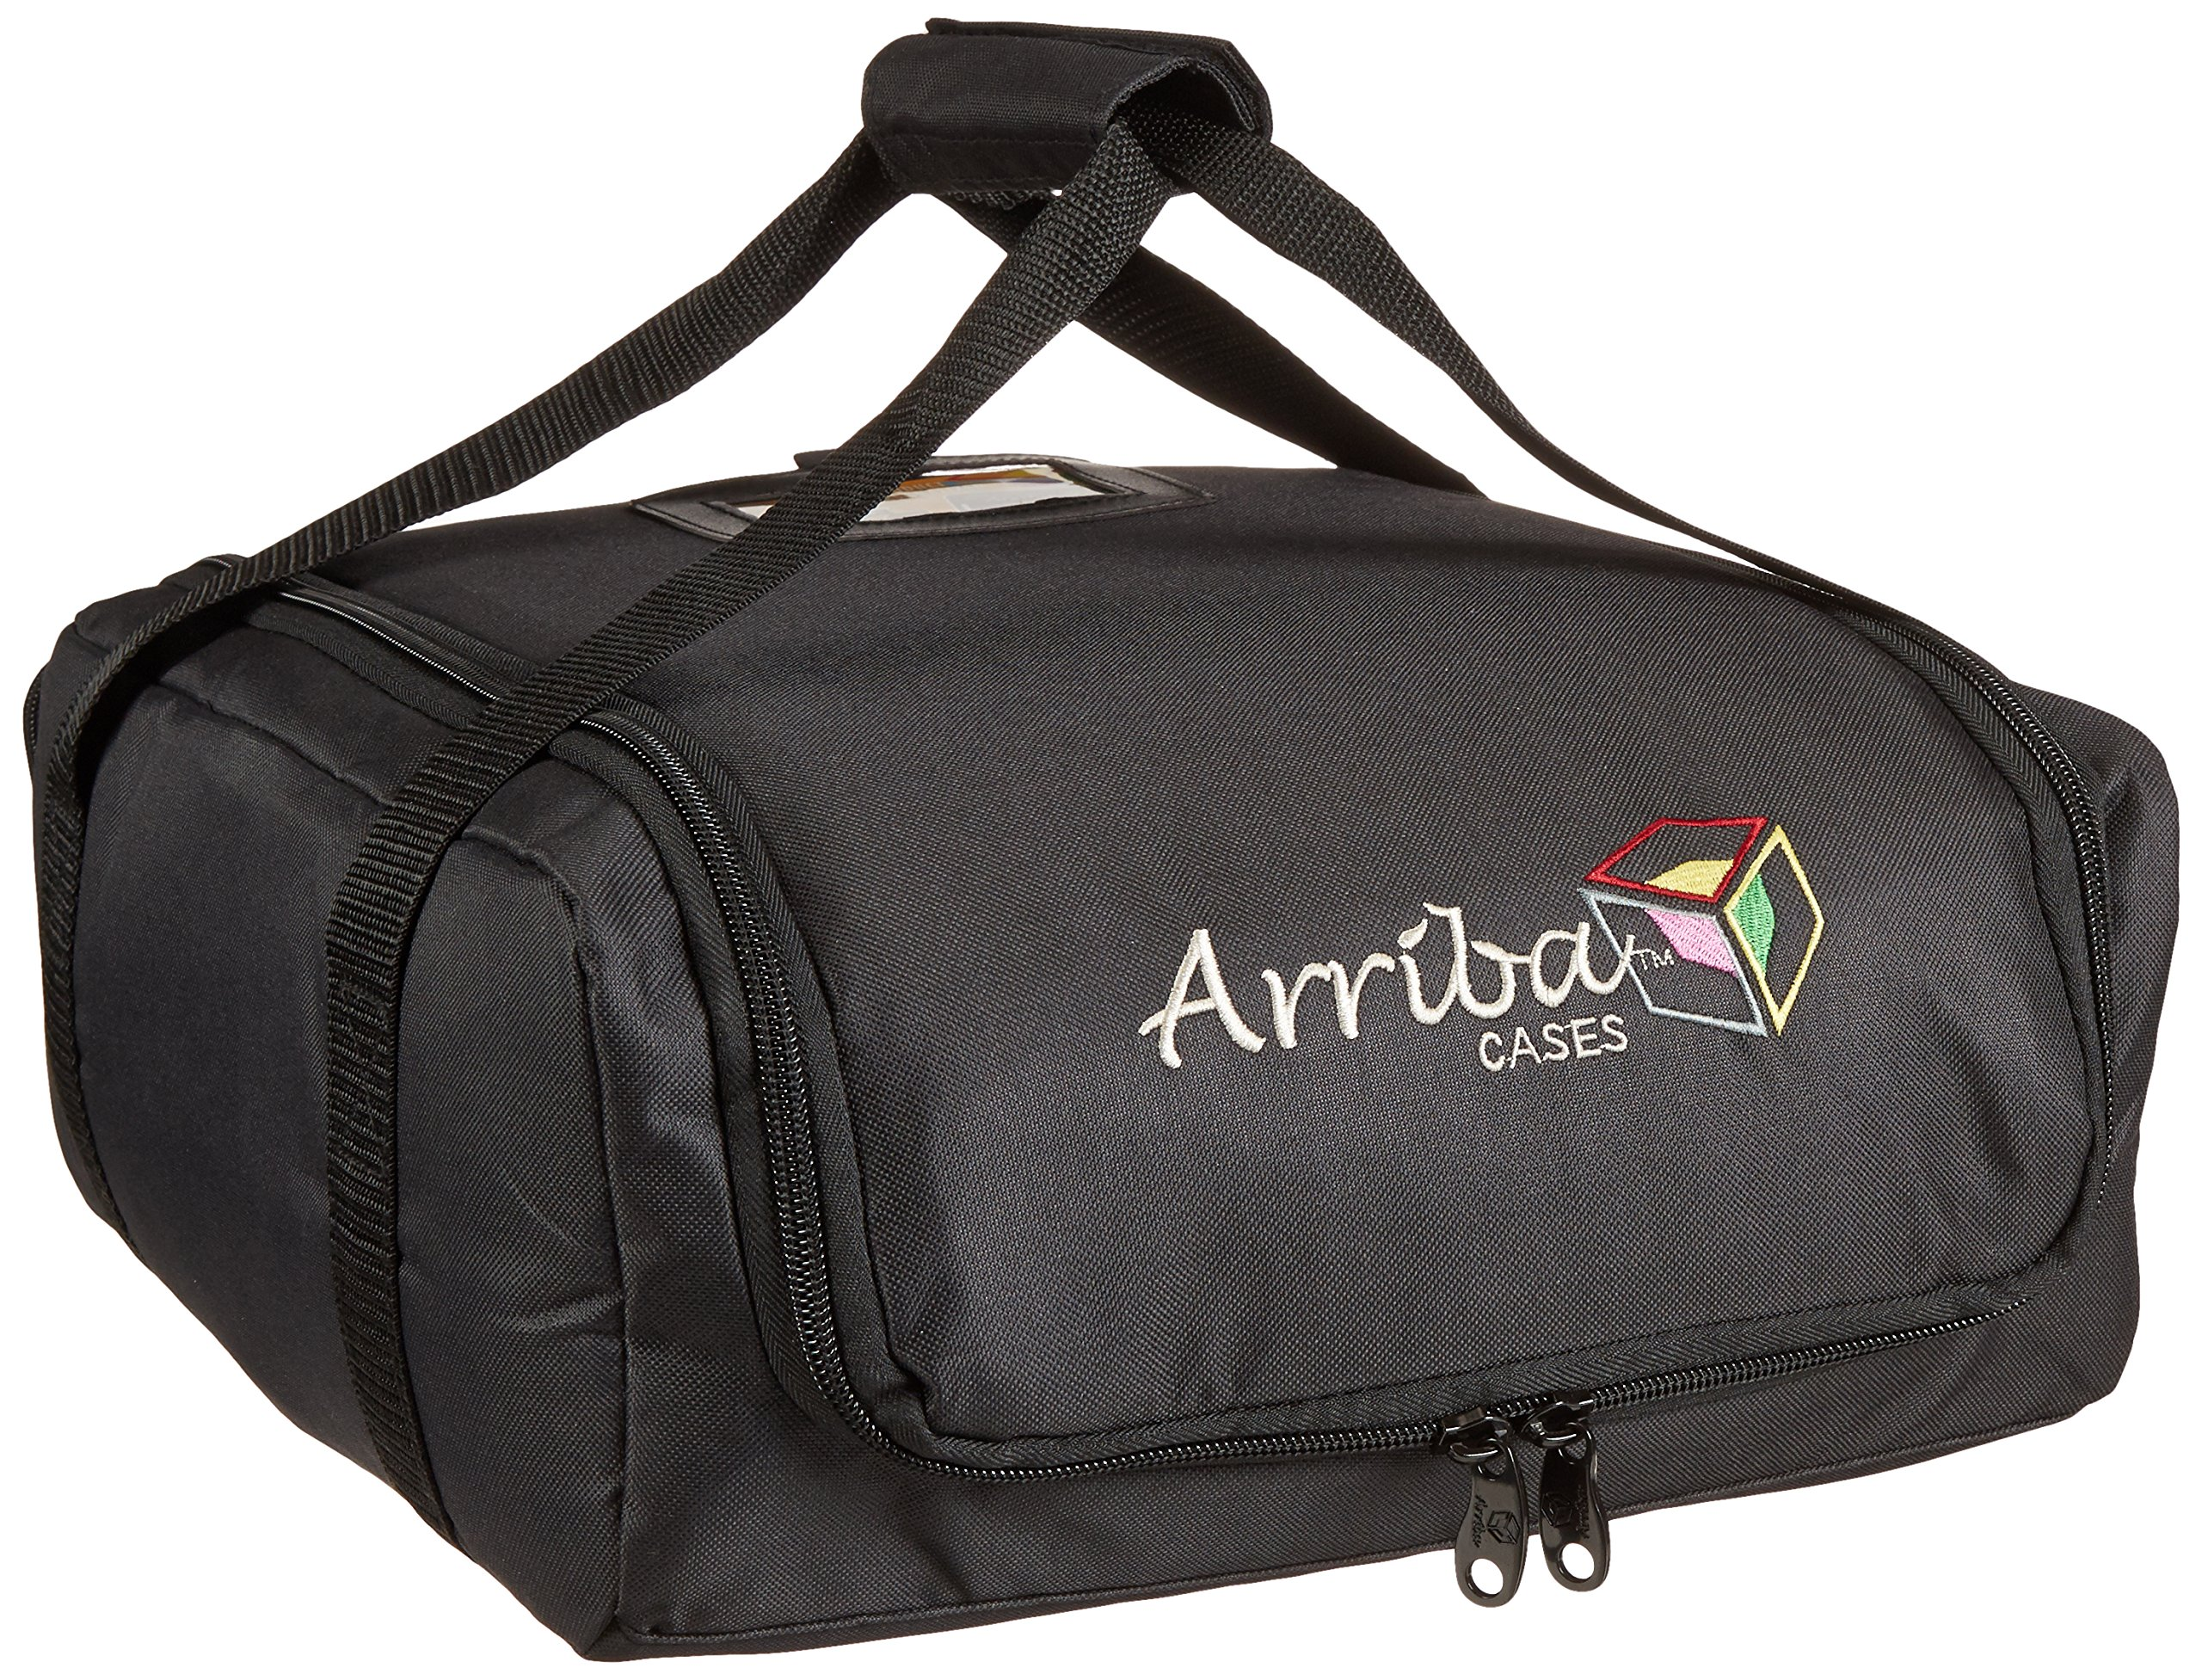 Arriba Cases Ac-100 Padded Gear Transport Bag Dimensions 13.5X15.25X6 Inches